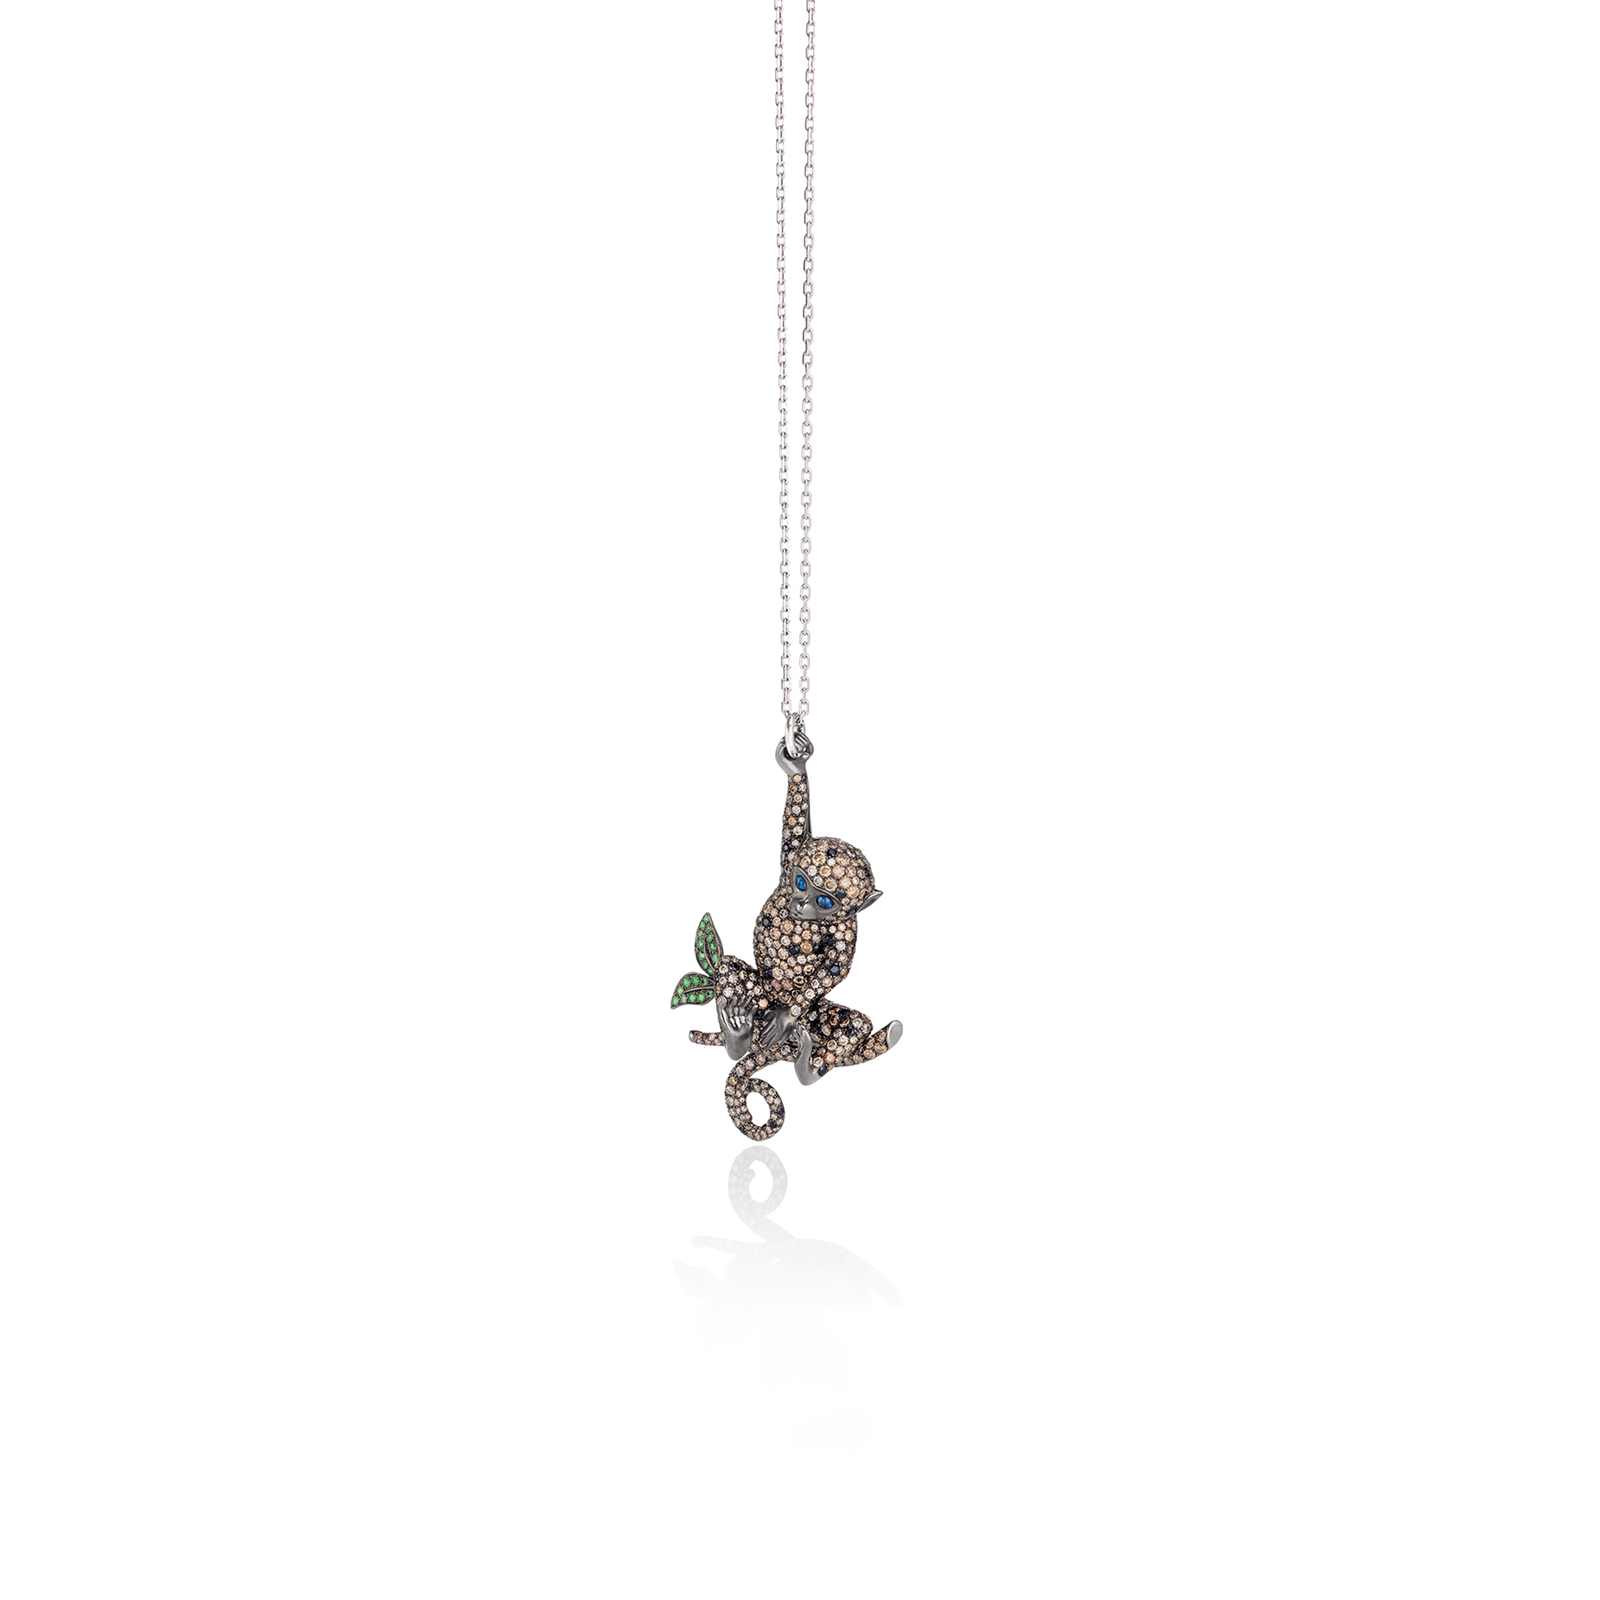 Roberto Coin Animalier Monkey Diamond Pendant